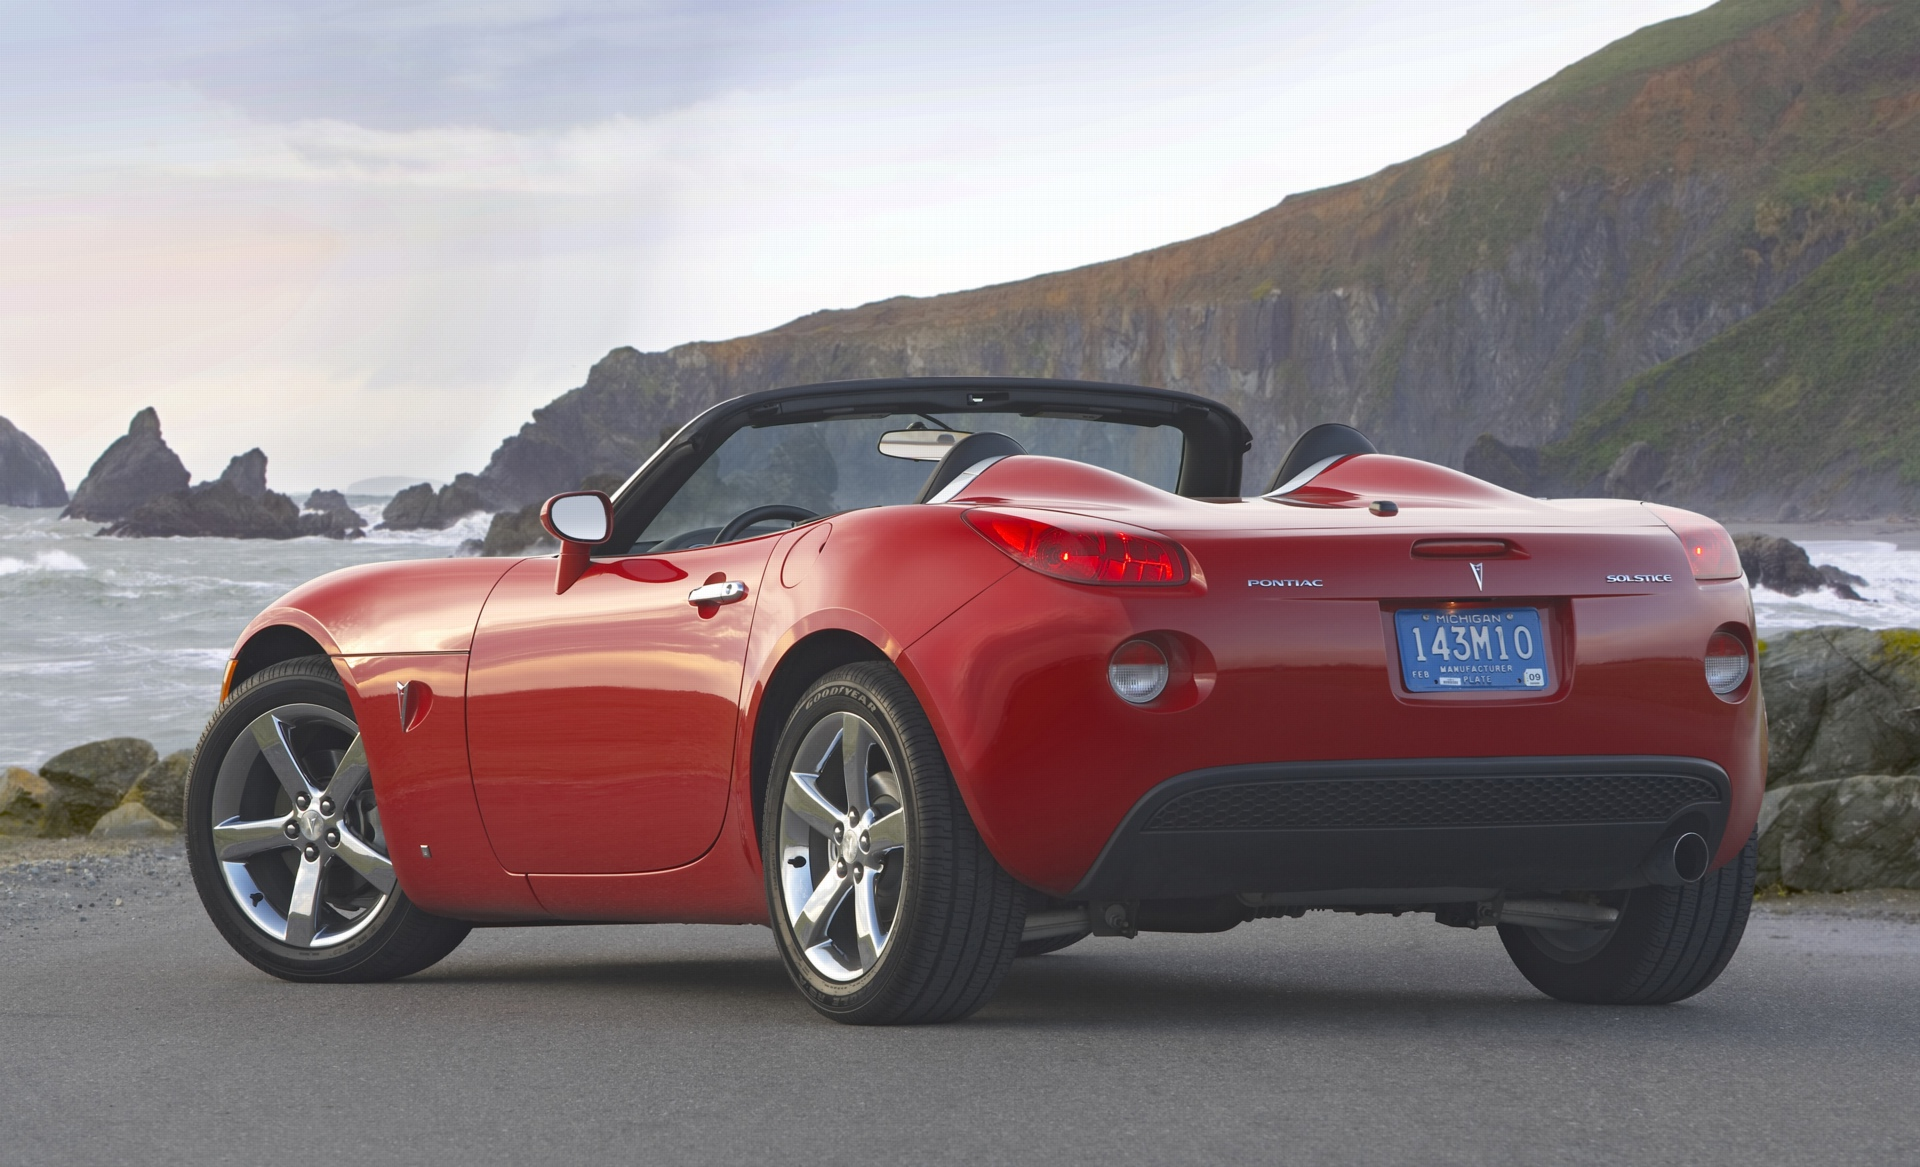 2008 Pontiac Solstice News and Information | conceptcarz.com